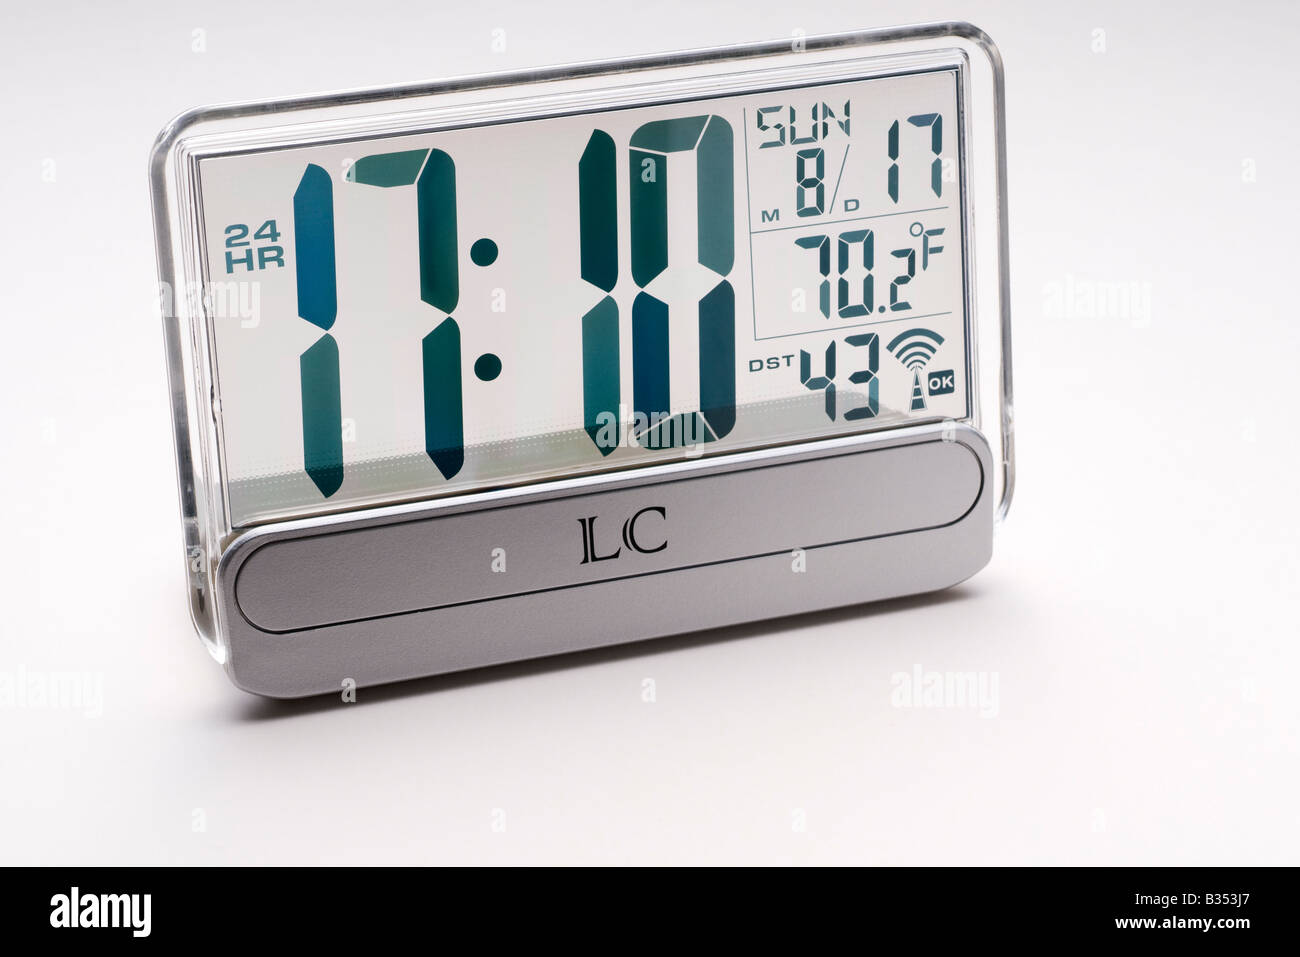 Clear radio controlled alarm clock with thermometer - Stock Image